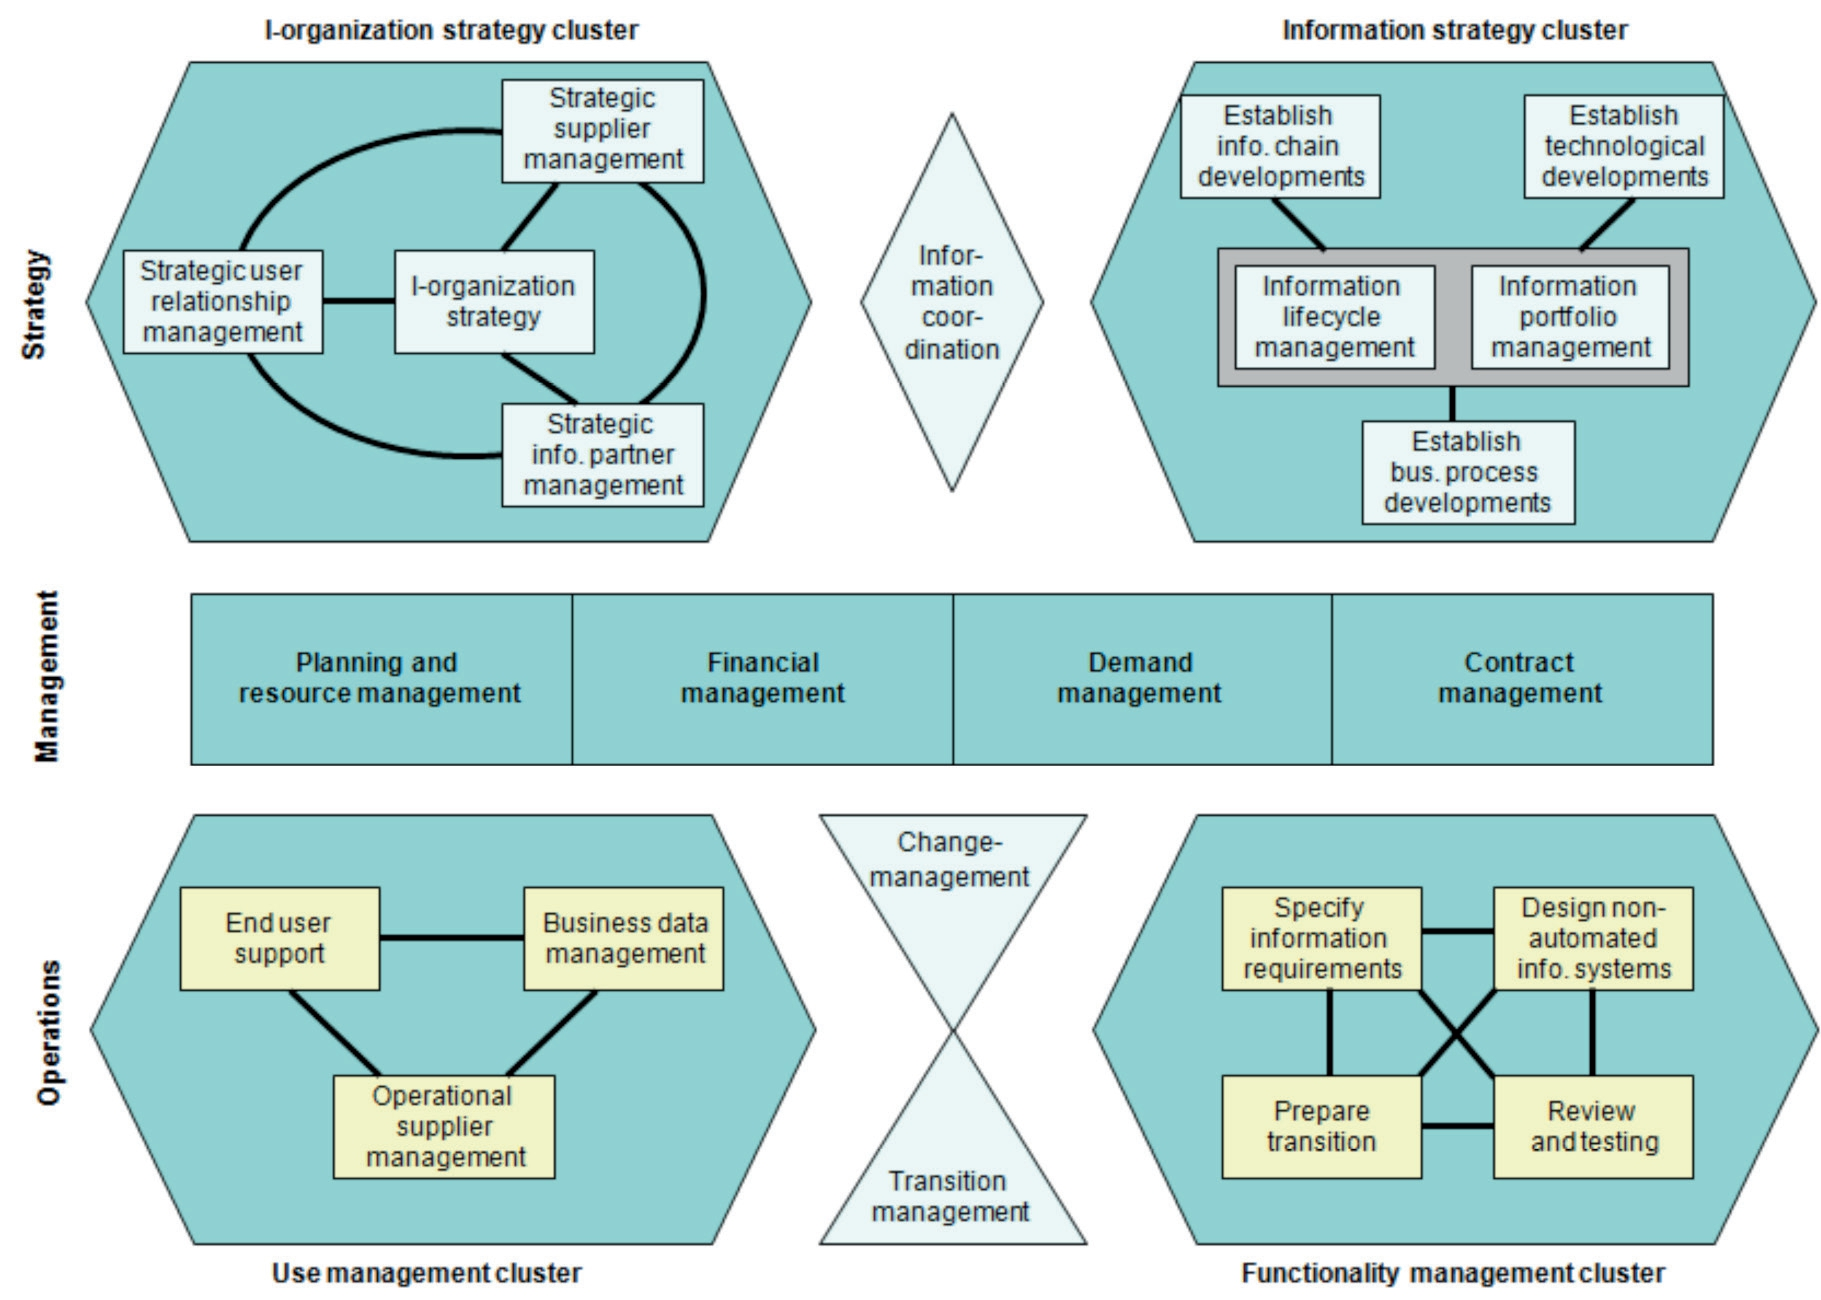 developing information systems strategies